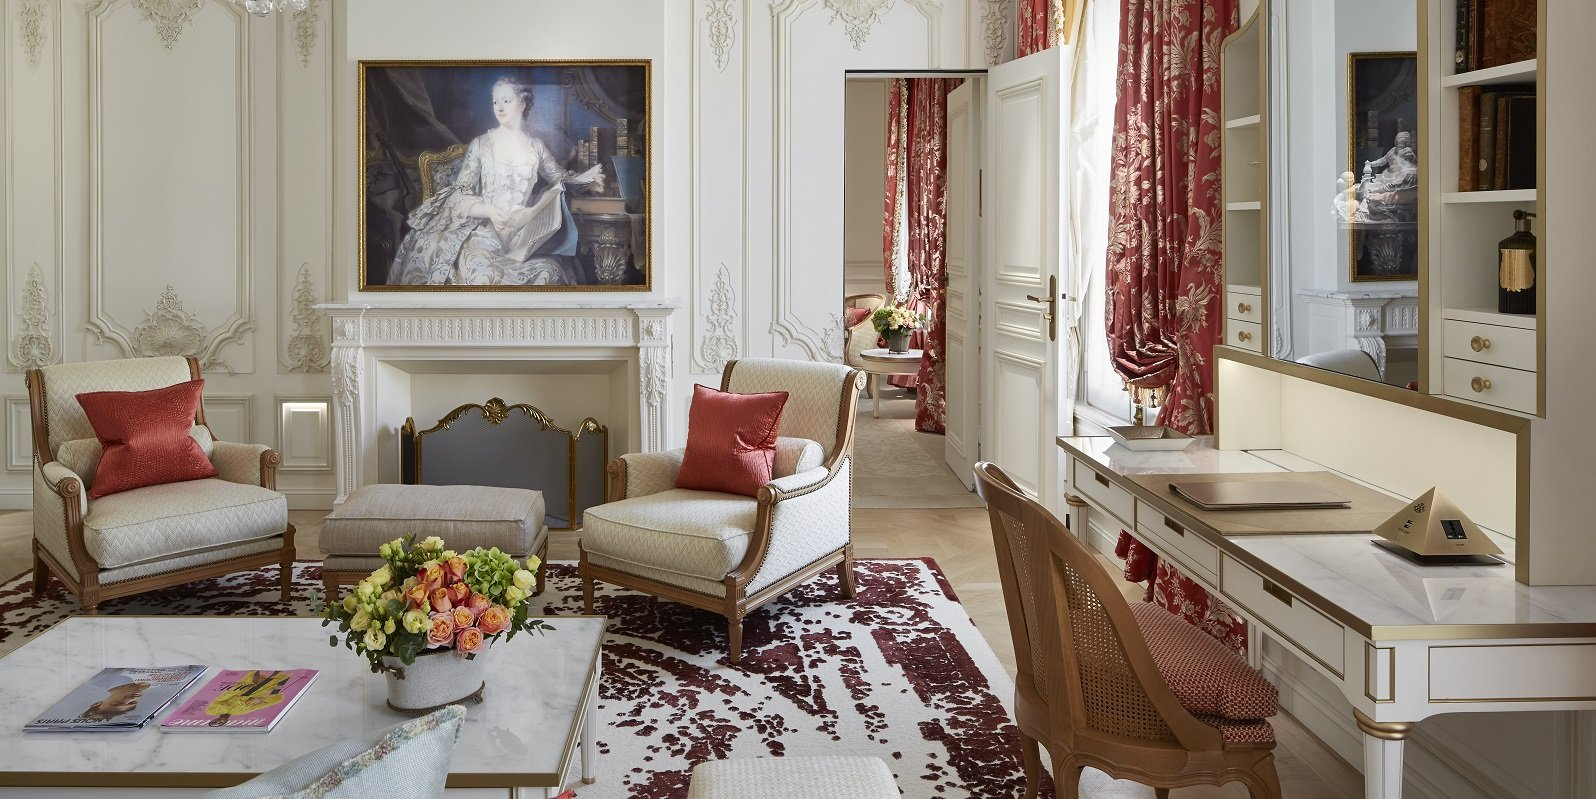 the Pompadour Suite at Le Meurice Paris